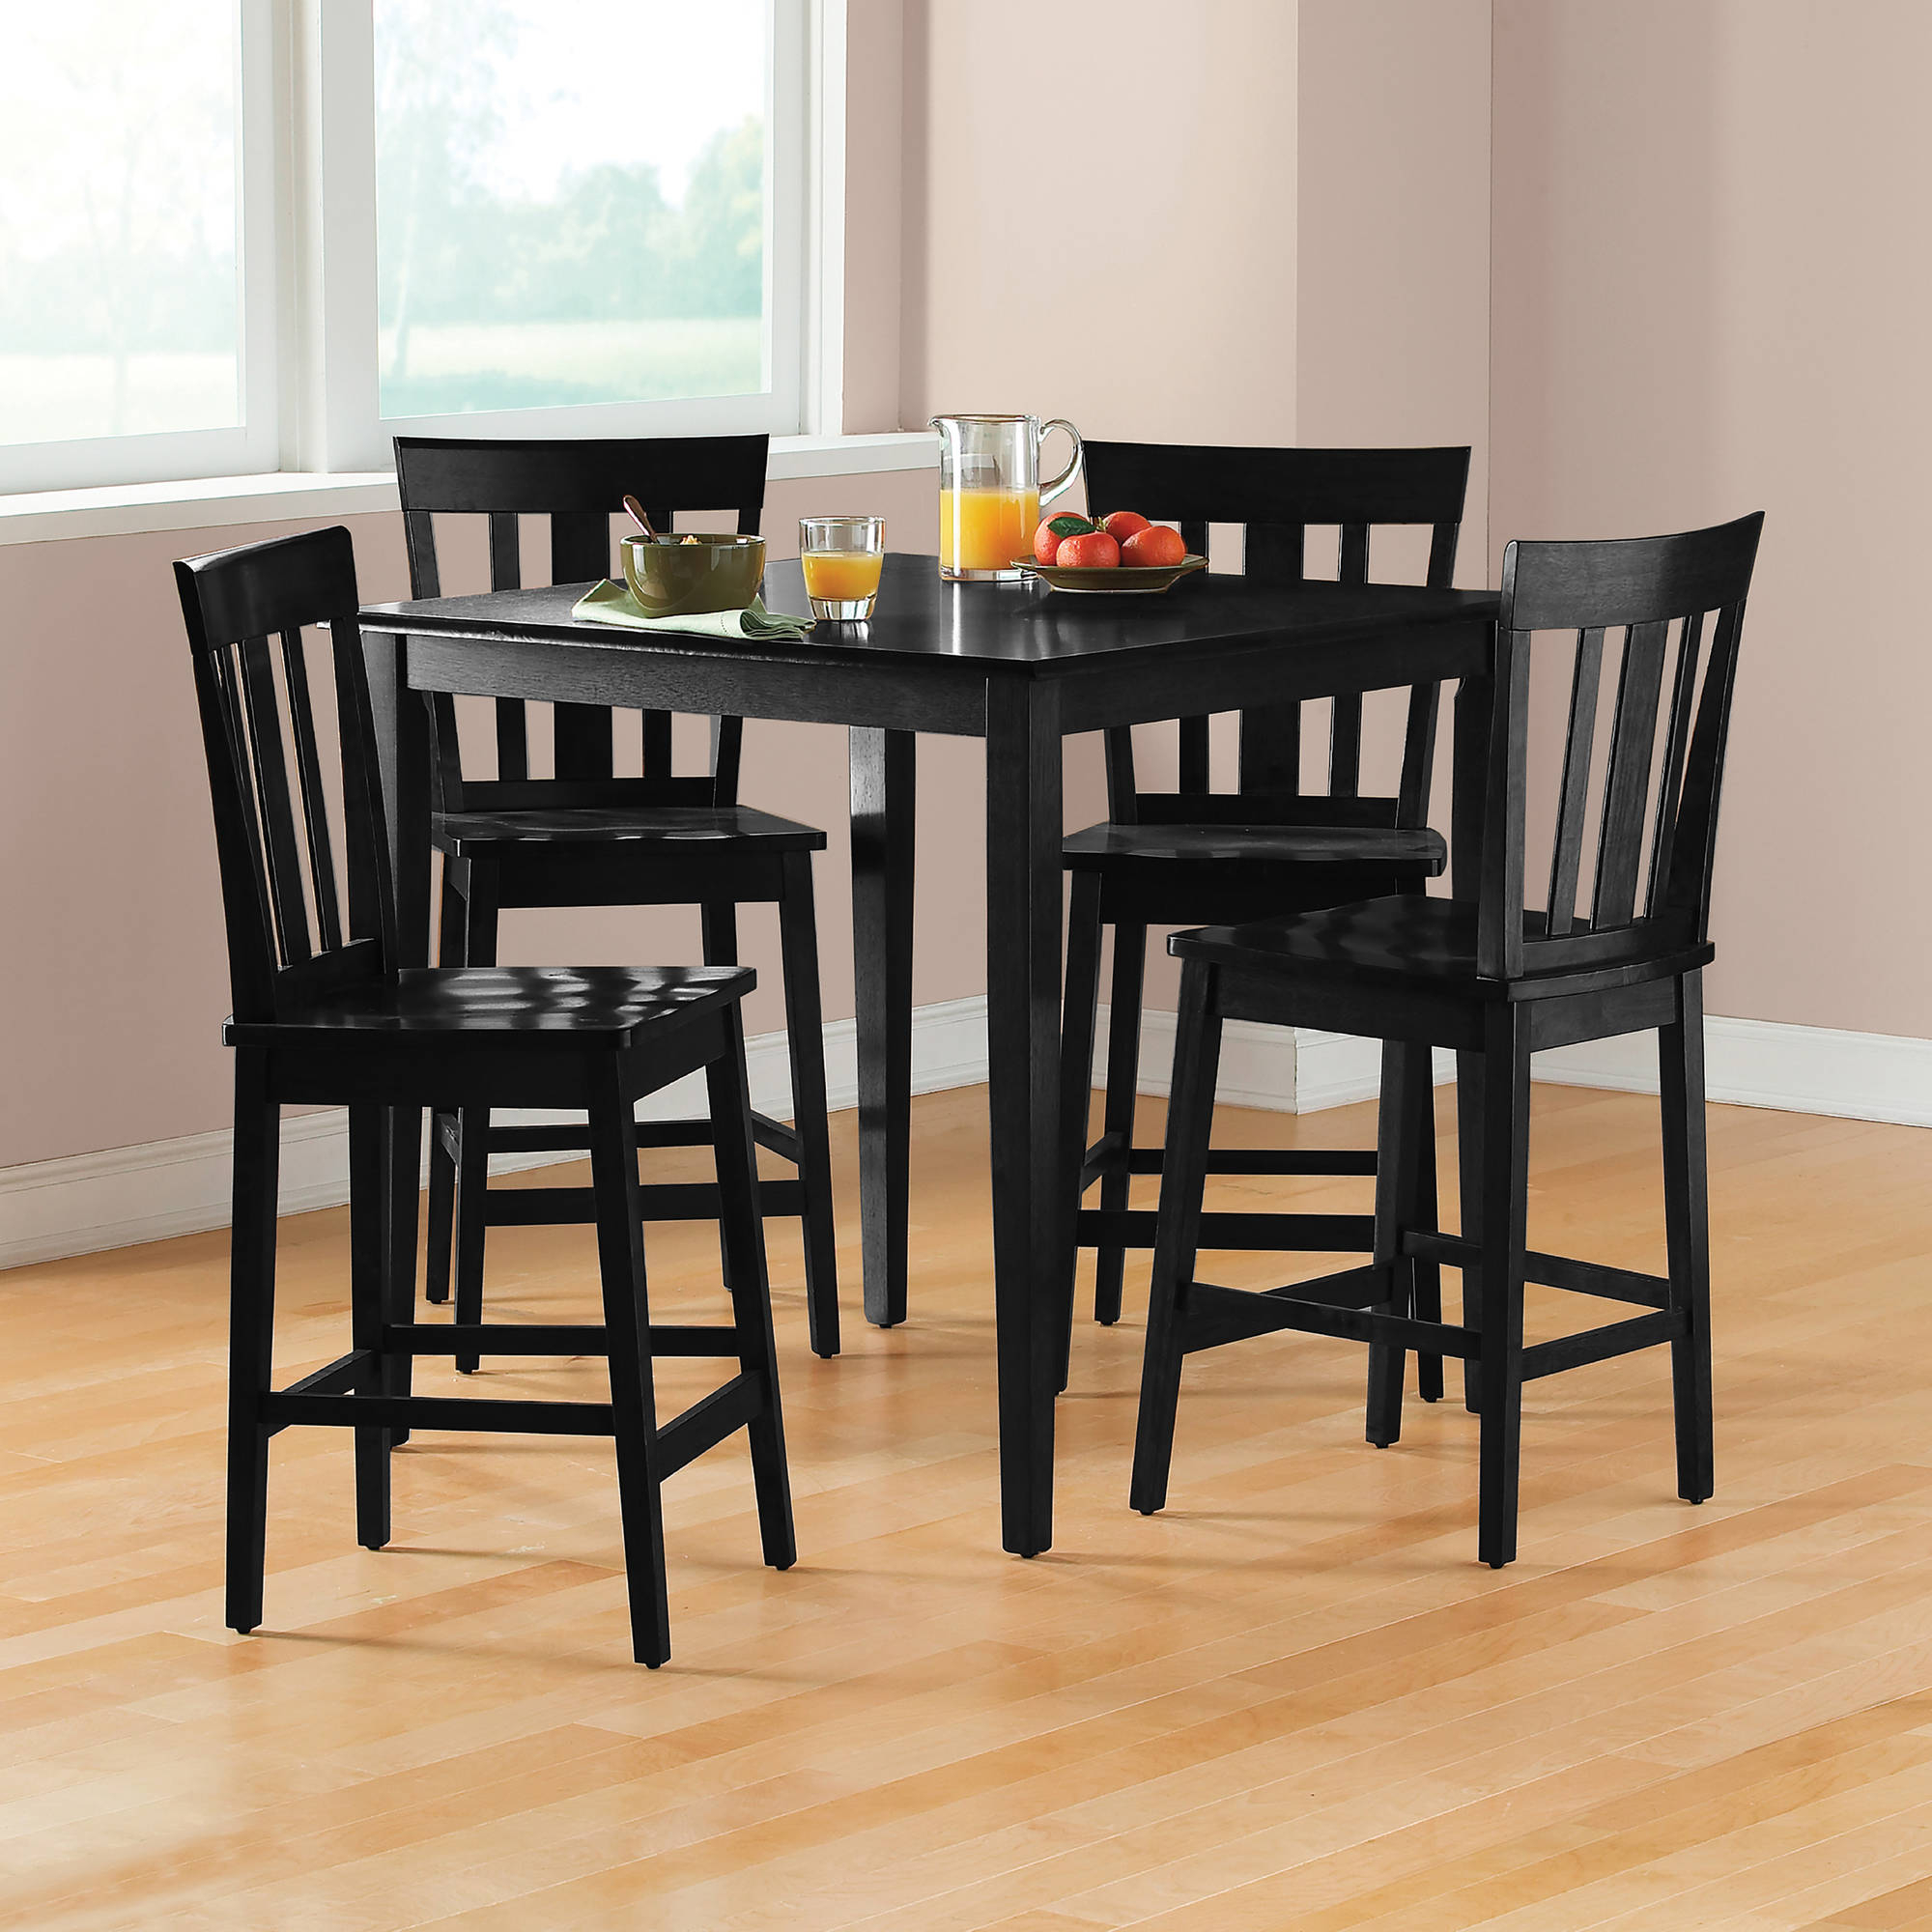 Target Marketing Systems 3 Piece Breakfast Nook Dining Set Intended For 2018 Crownover 3 Piece Bar Table Sets (Image 16 of 20)